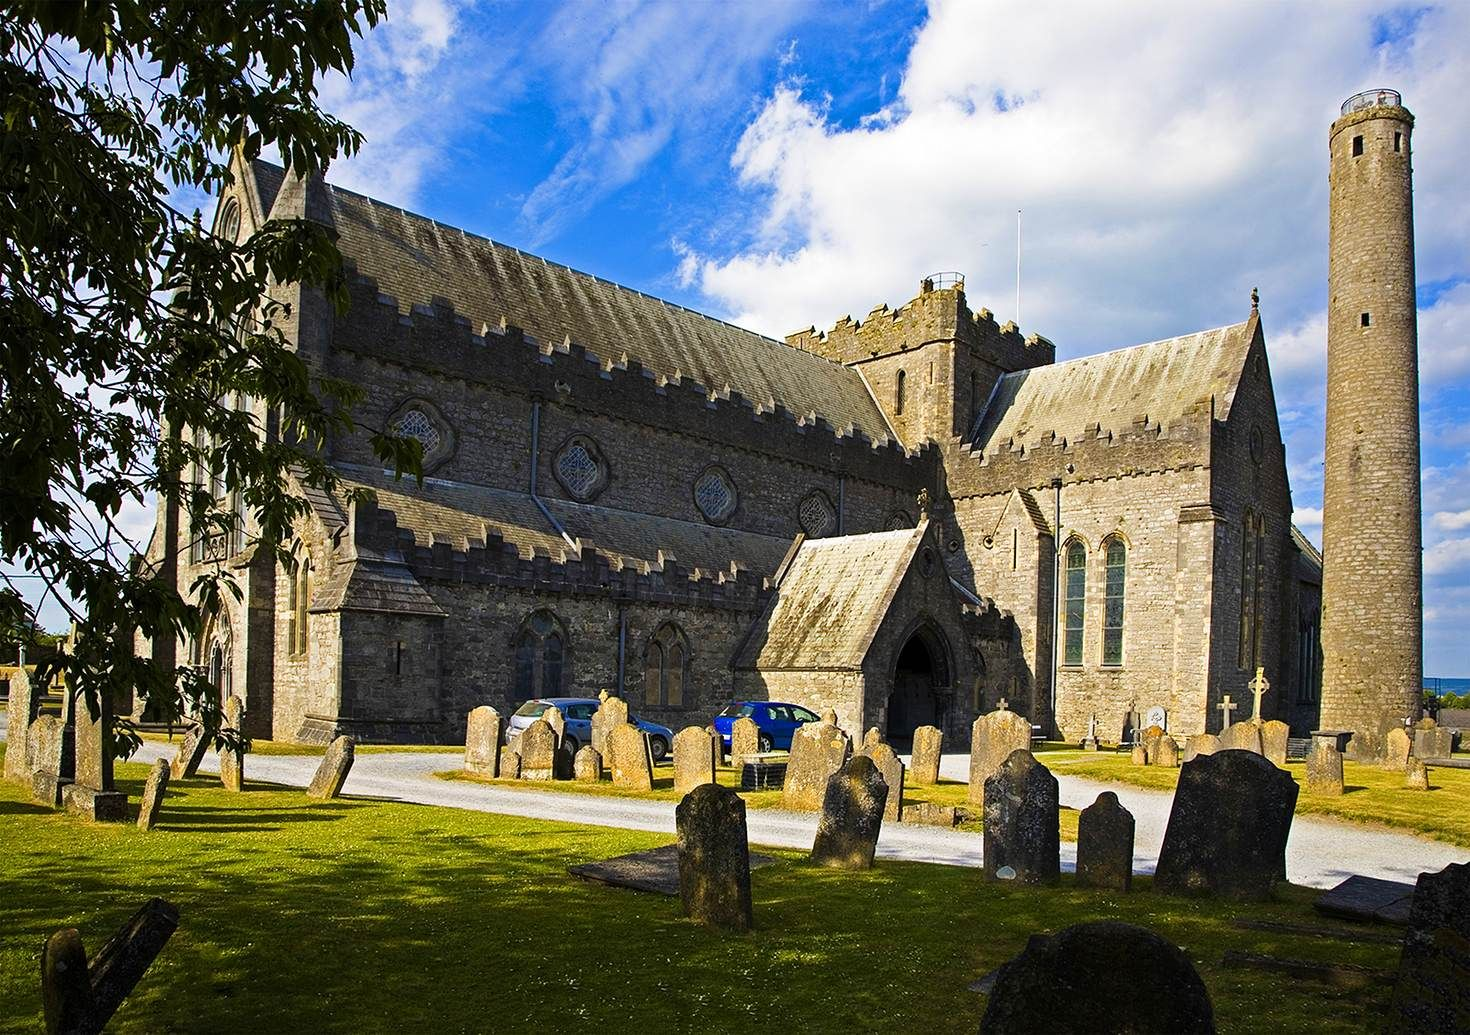 Kilkenny's Cathedral of St Canice